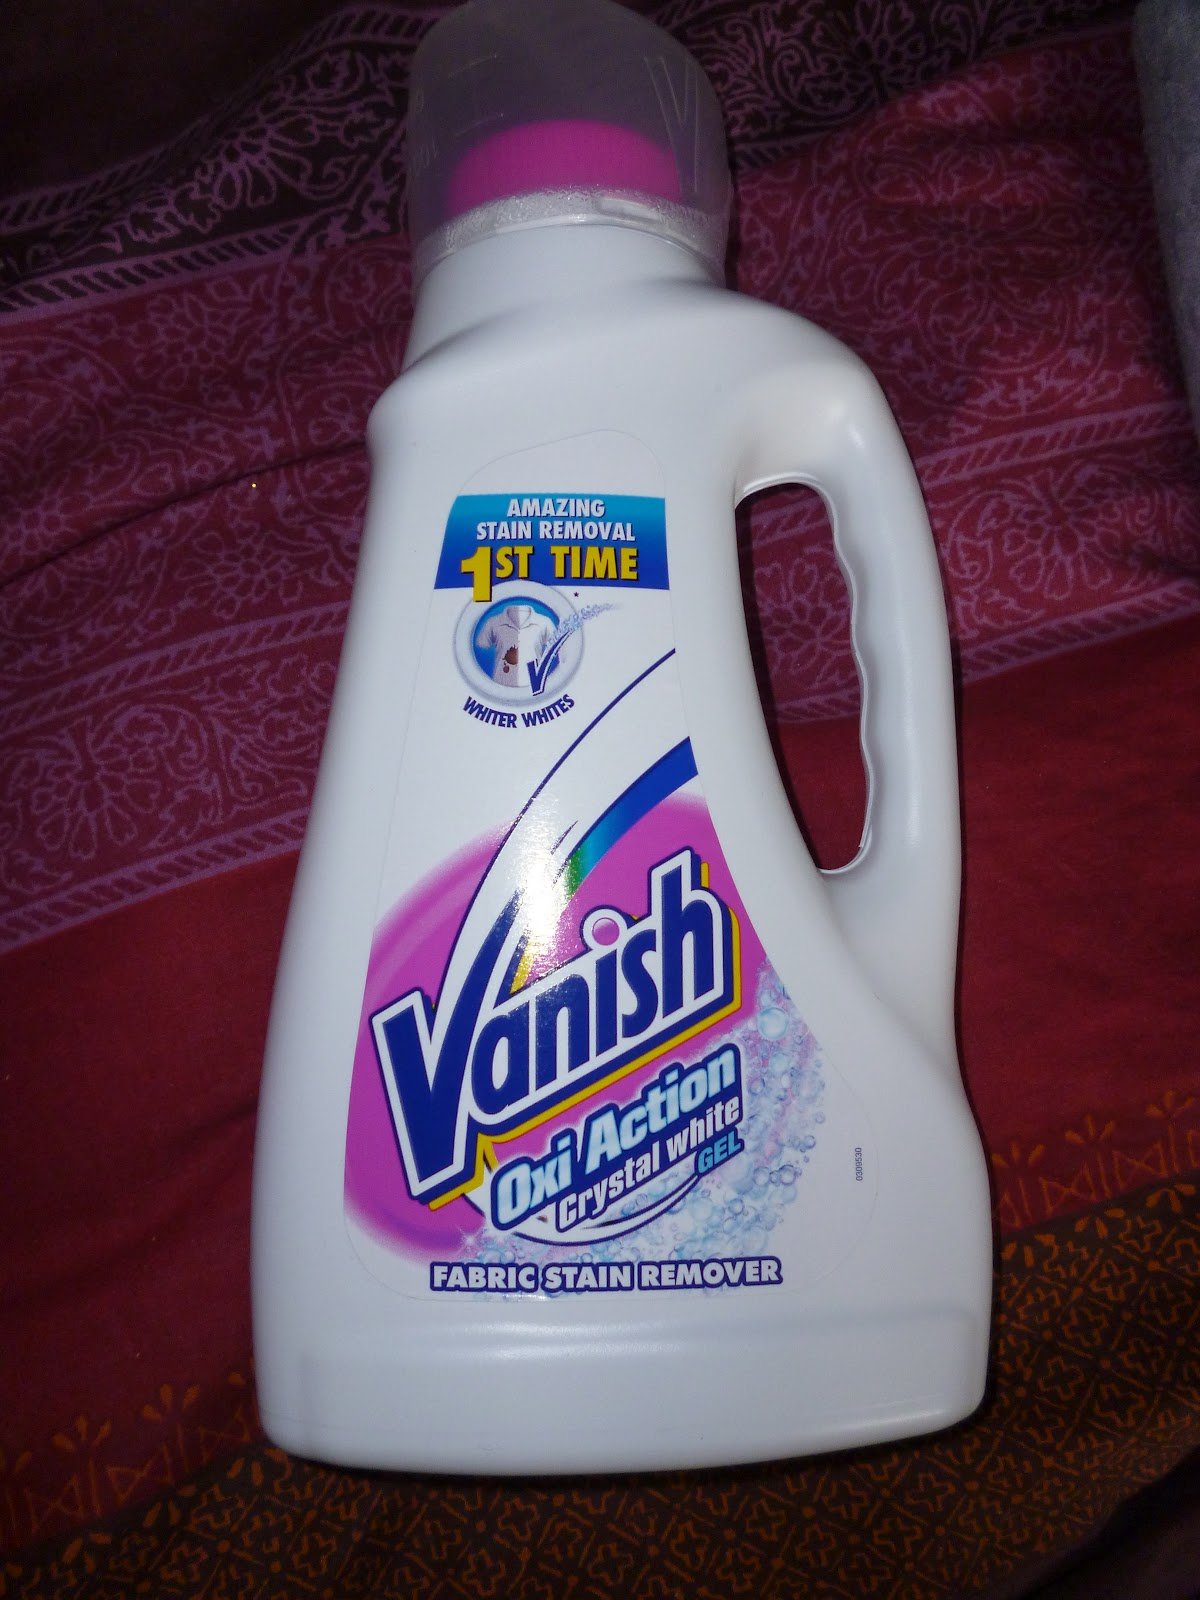 Vanish (stain remover): customer reviews